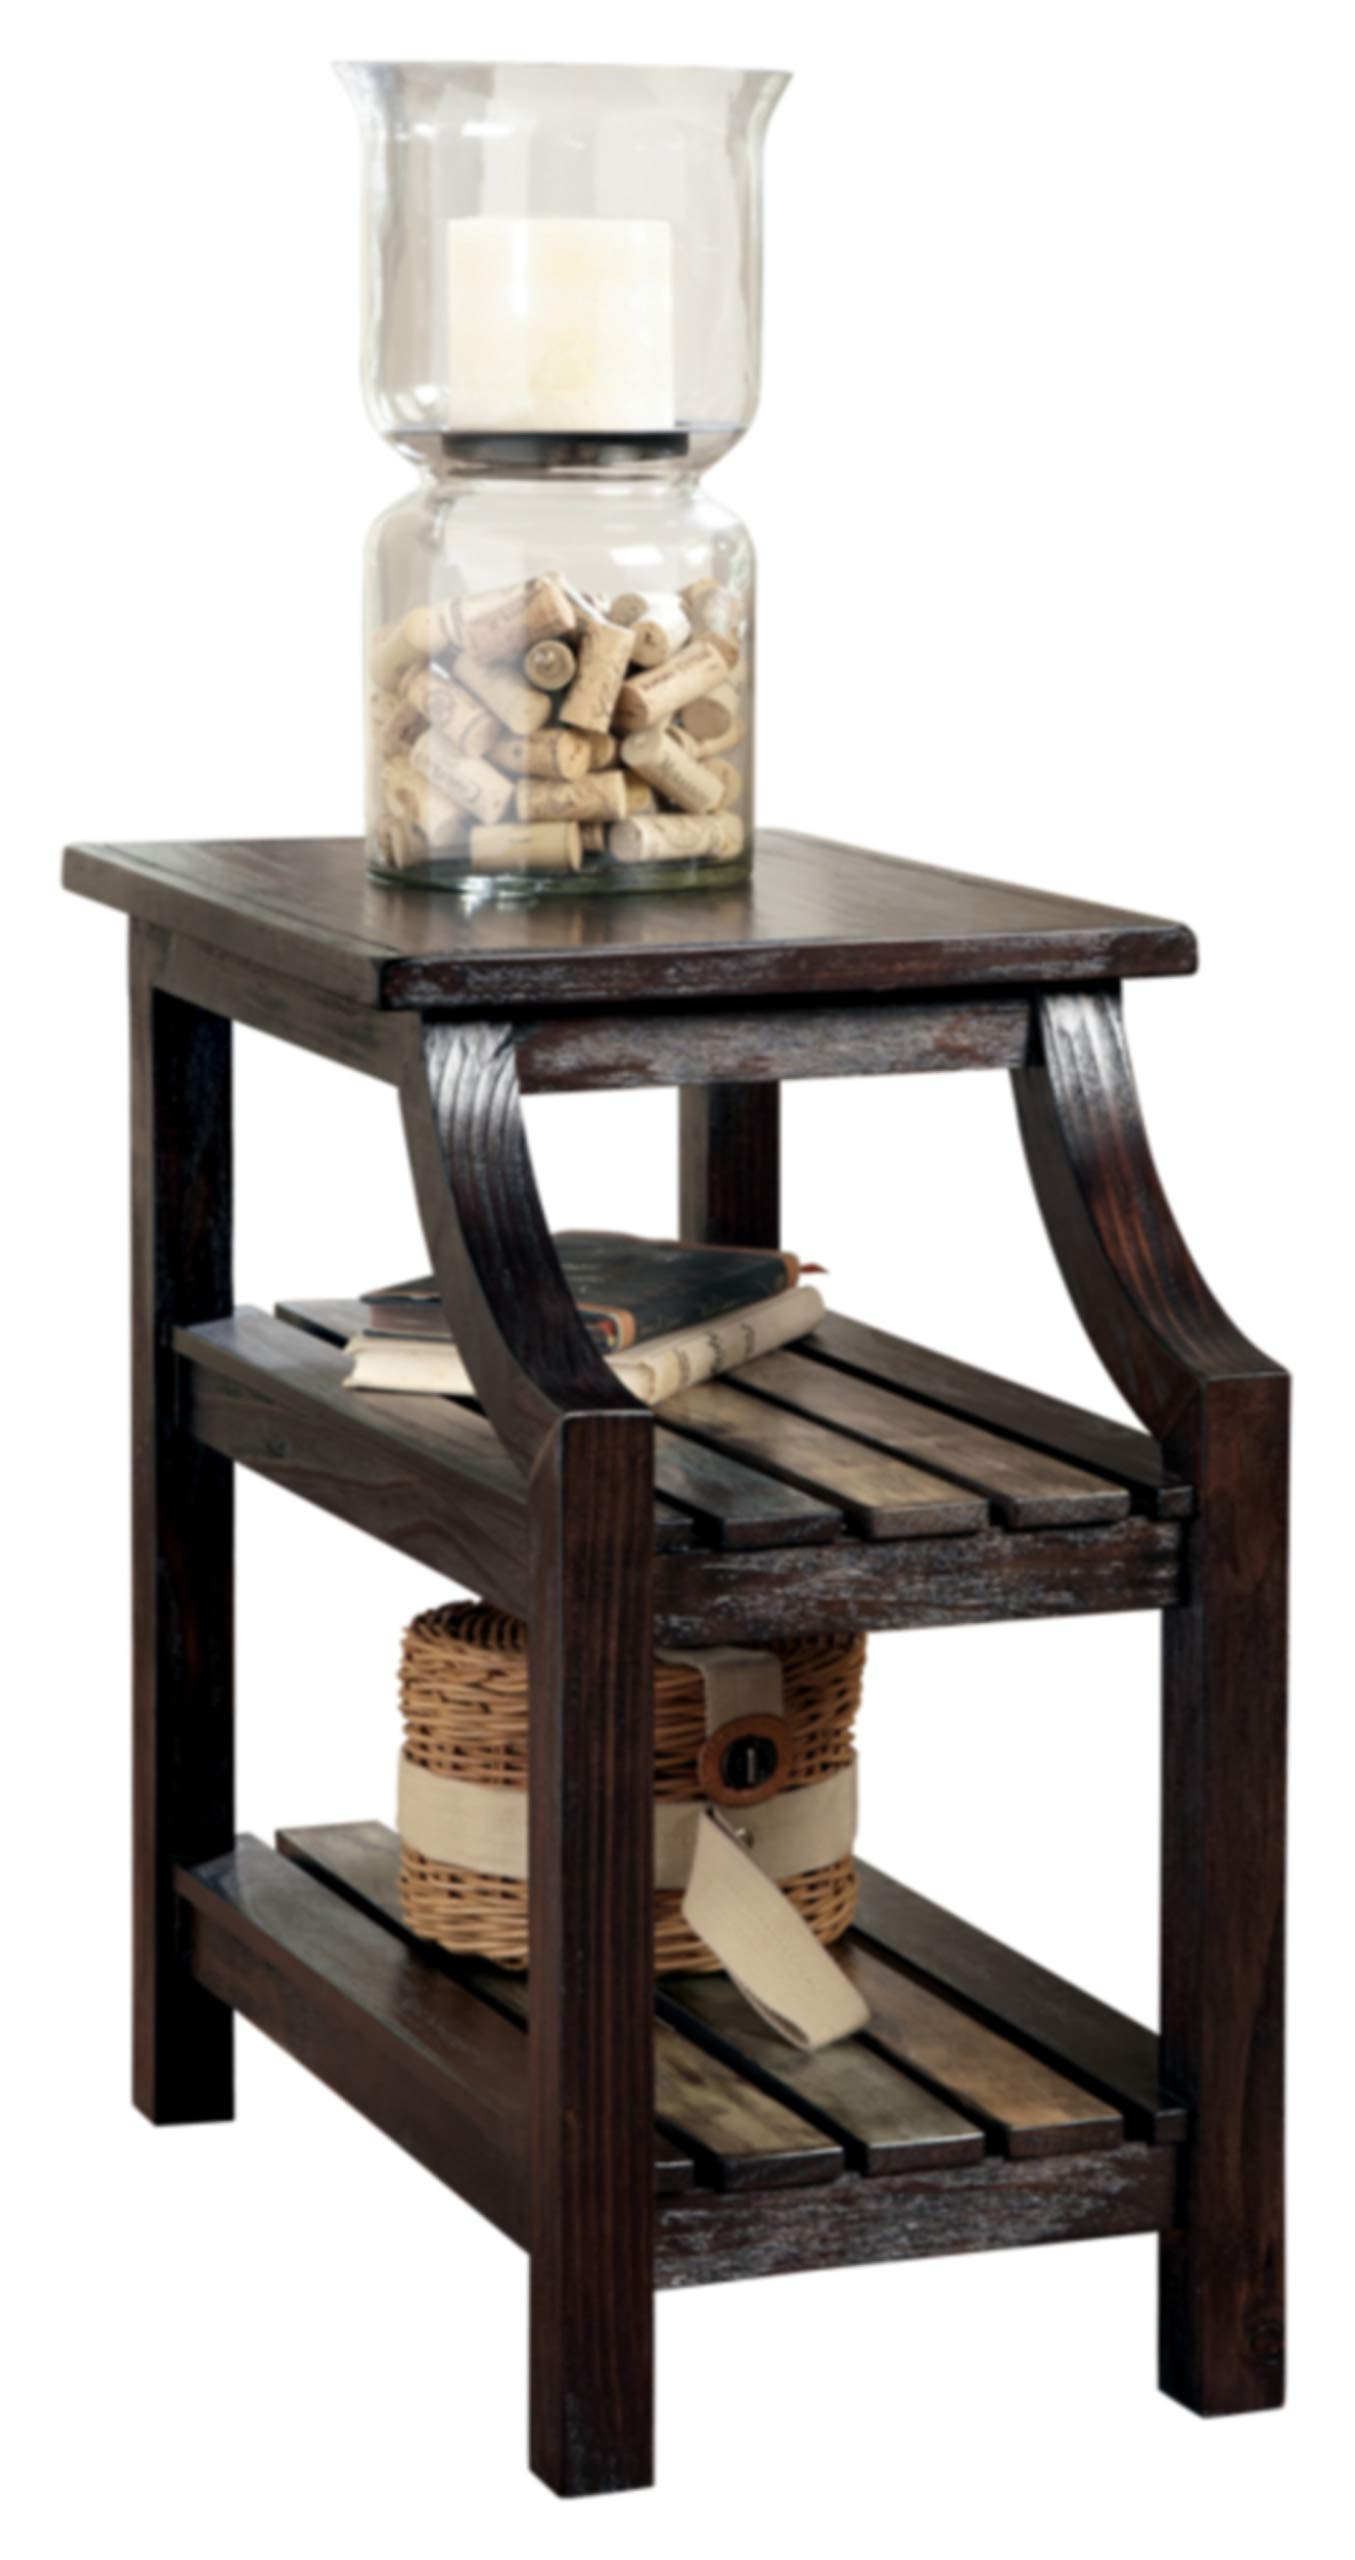 Signature Design by Ashley - Mestler Rustic Chairside End Table w/ Two Fixed Multi-Colored Shelves, Brown